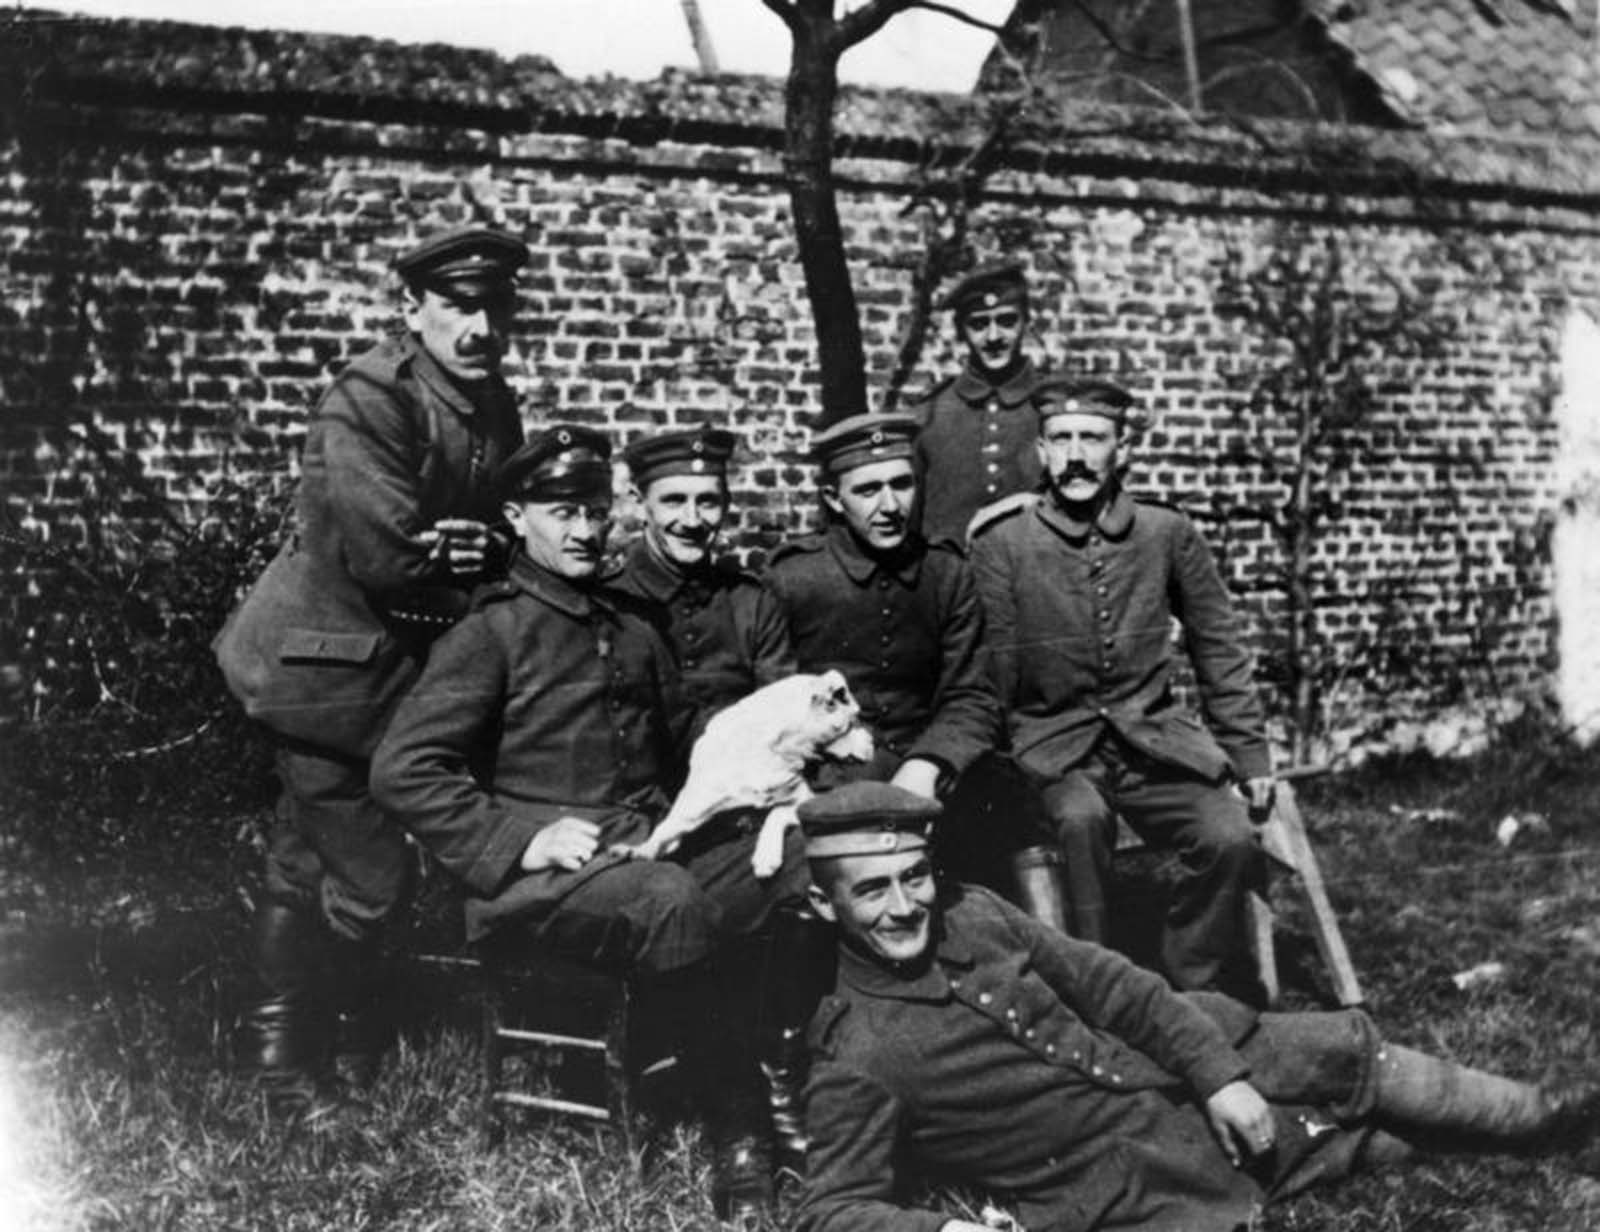 Hitler sitting at far right among soldiers of the